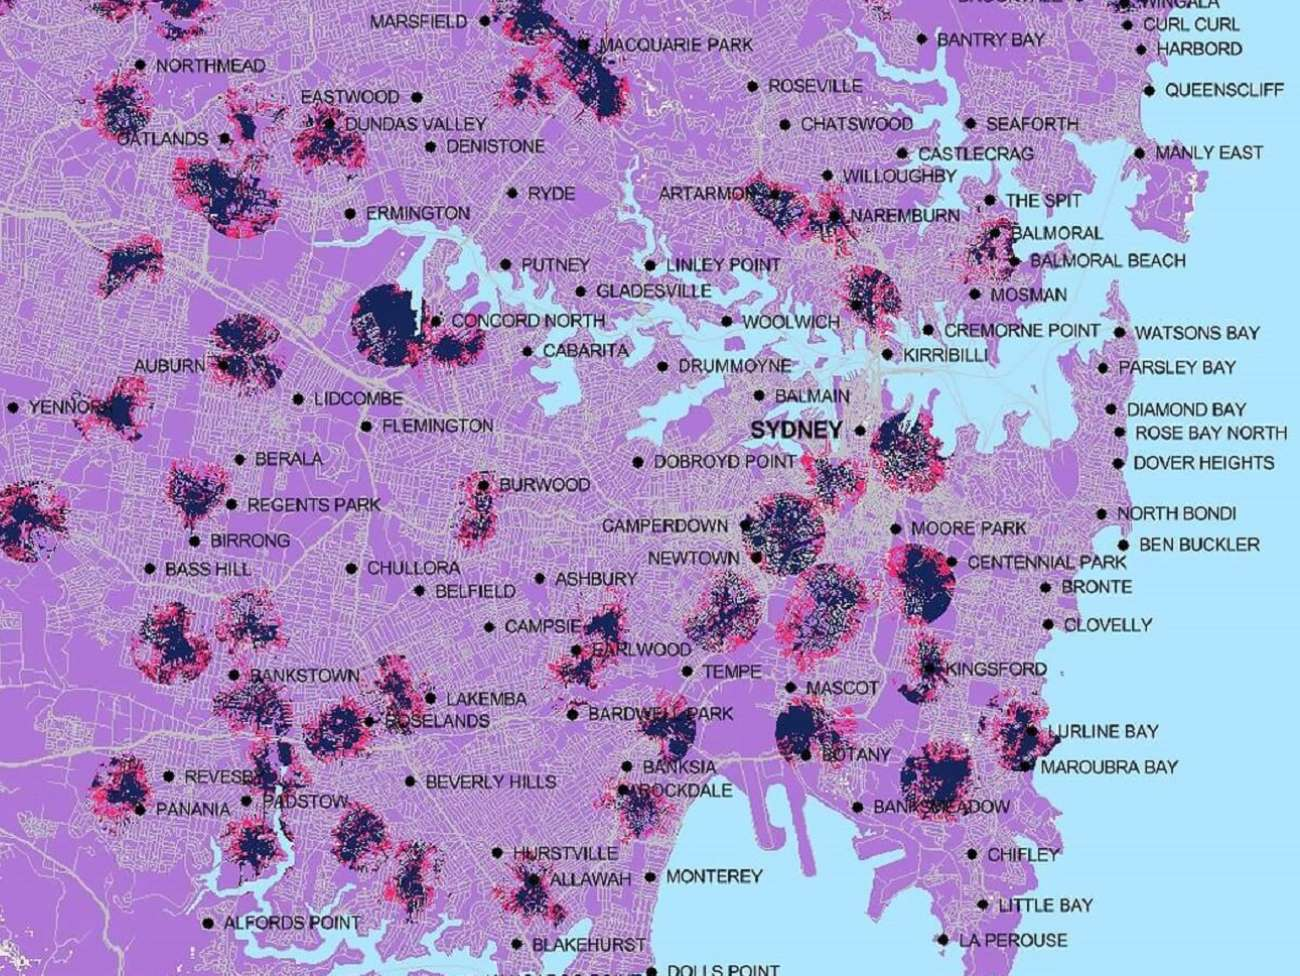 Optus 5G coverage map for Sydney